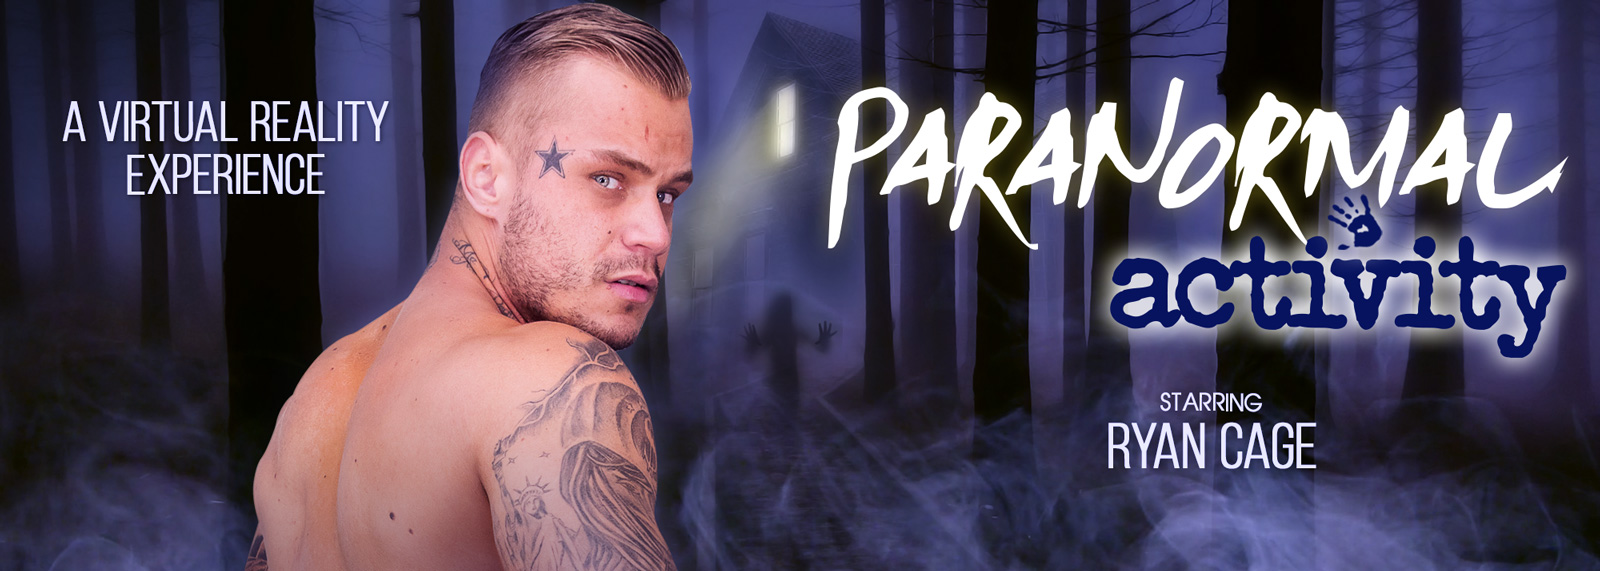 Paranormal Activity - VR Porn Video, Starring Ryan Cage